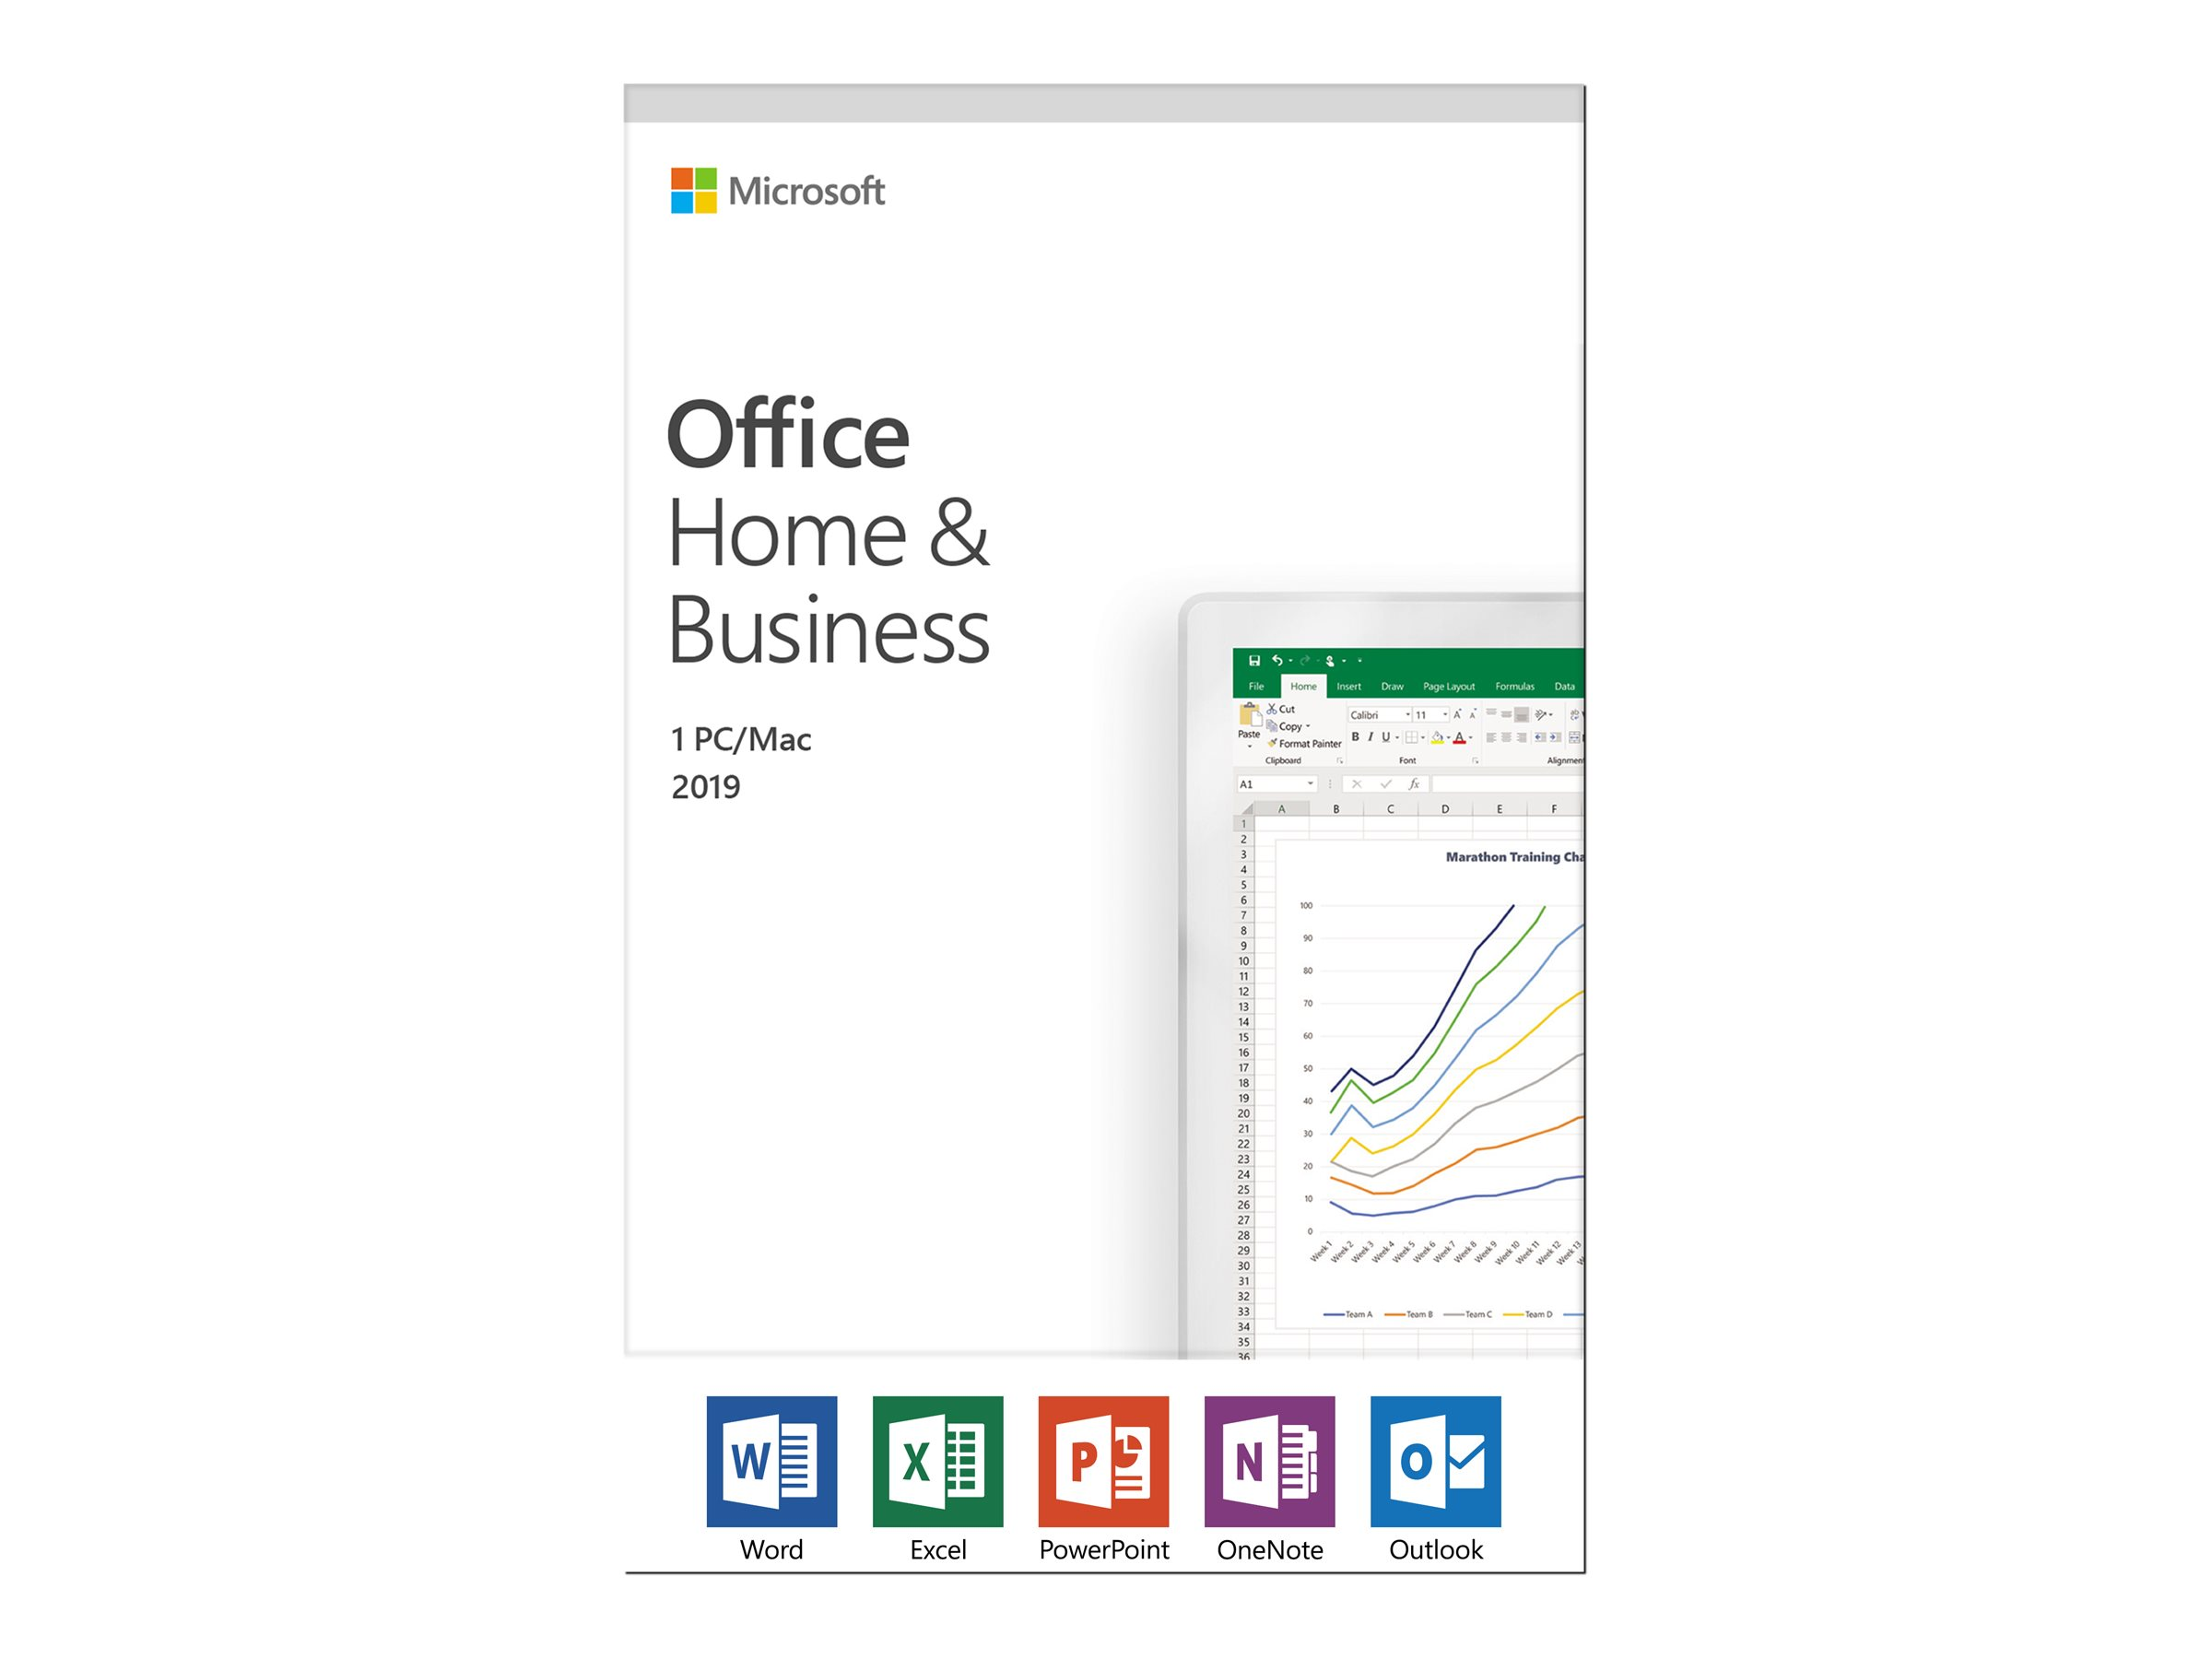 microsoft office home and business 2019 (1 mac) $249.95